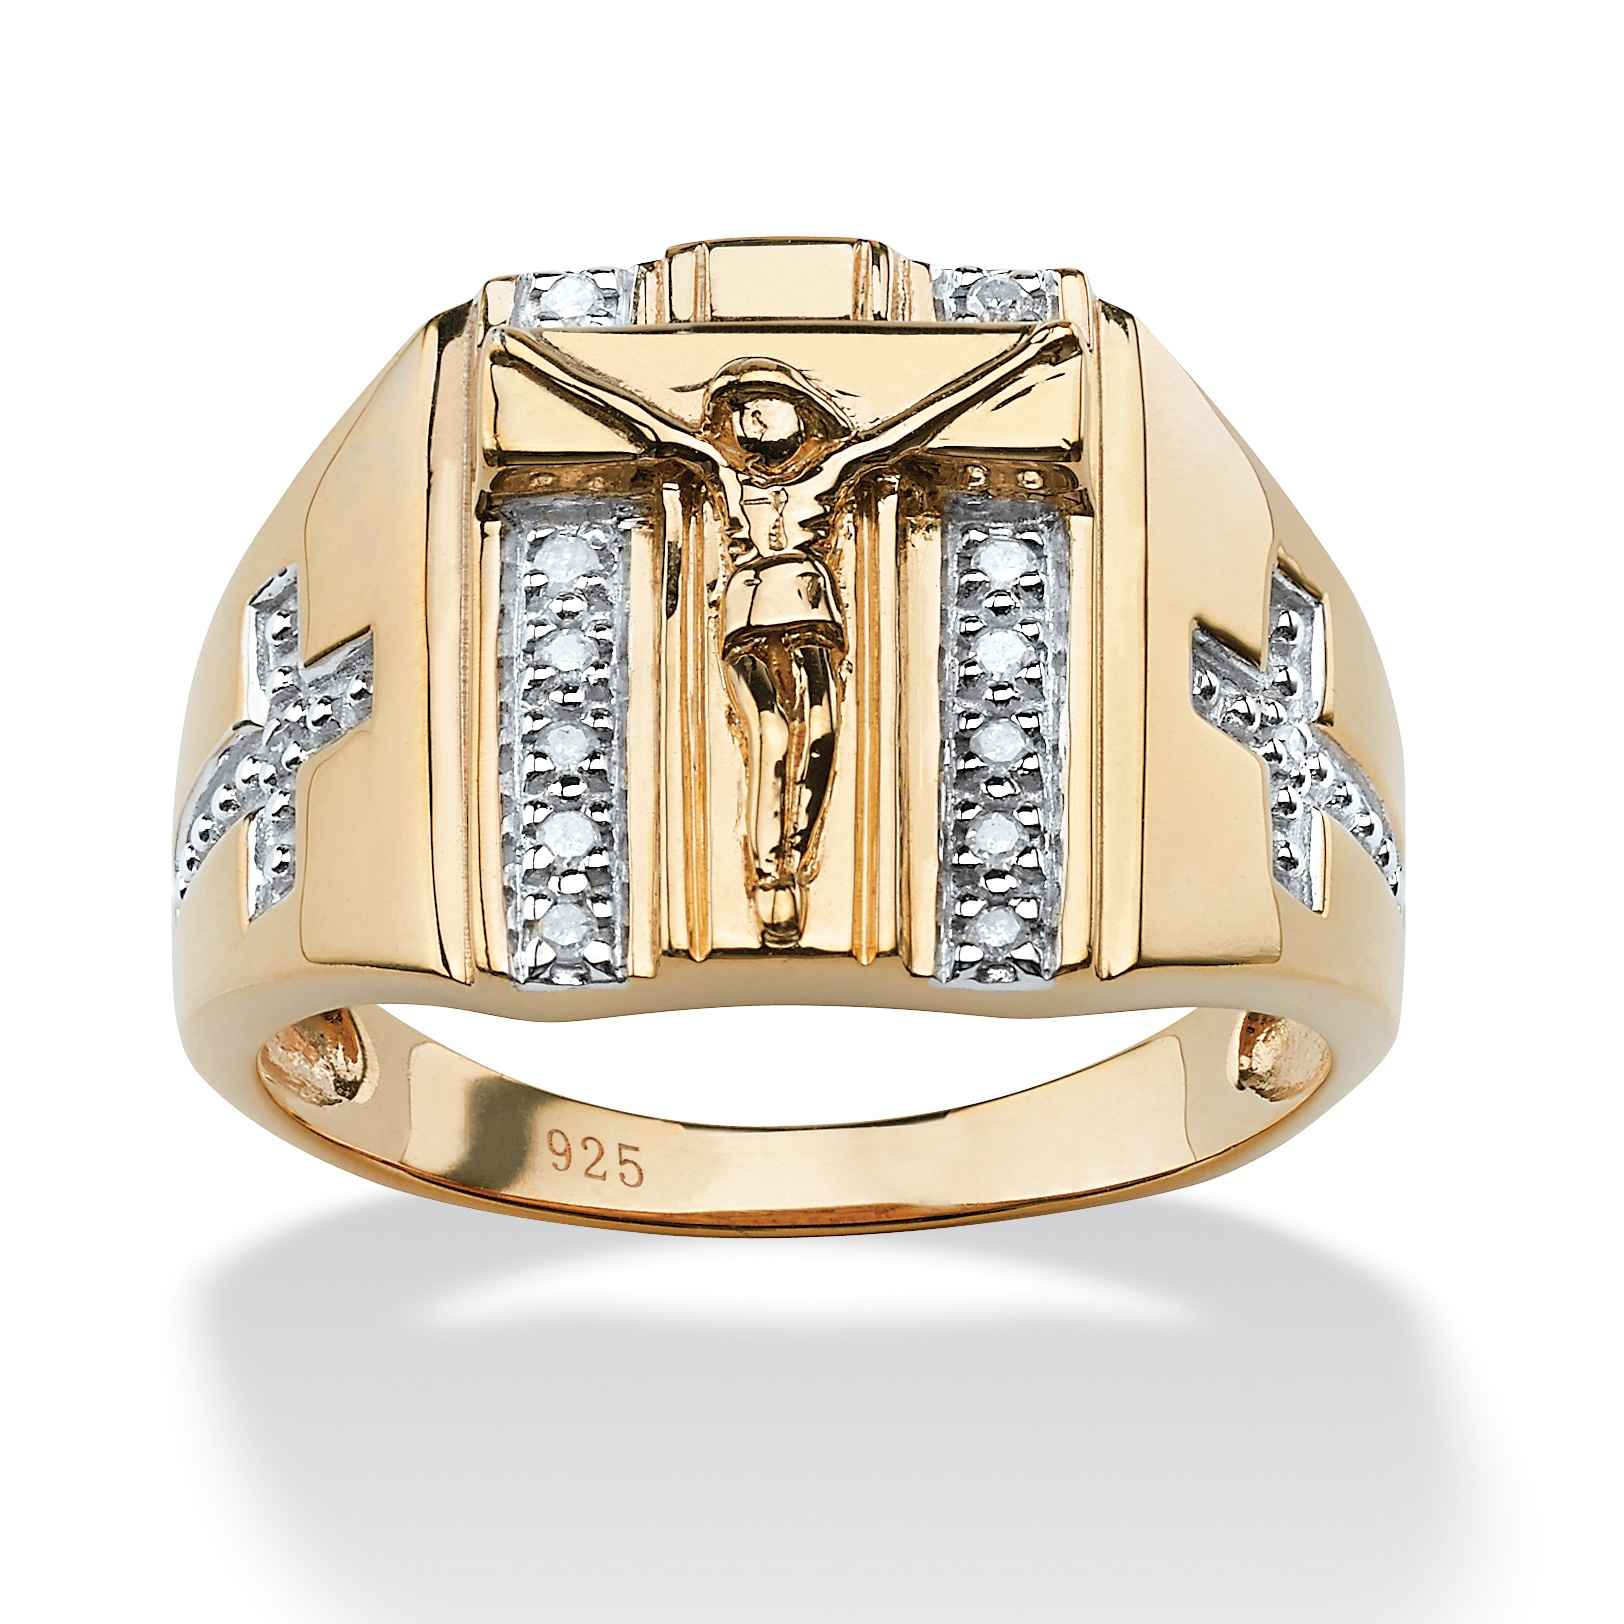 Men's 1/10 TCW Round Diamond Crucifix and Cross Ring in 18k Gold over Sterling Silver Sizes 9-13